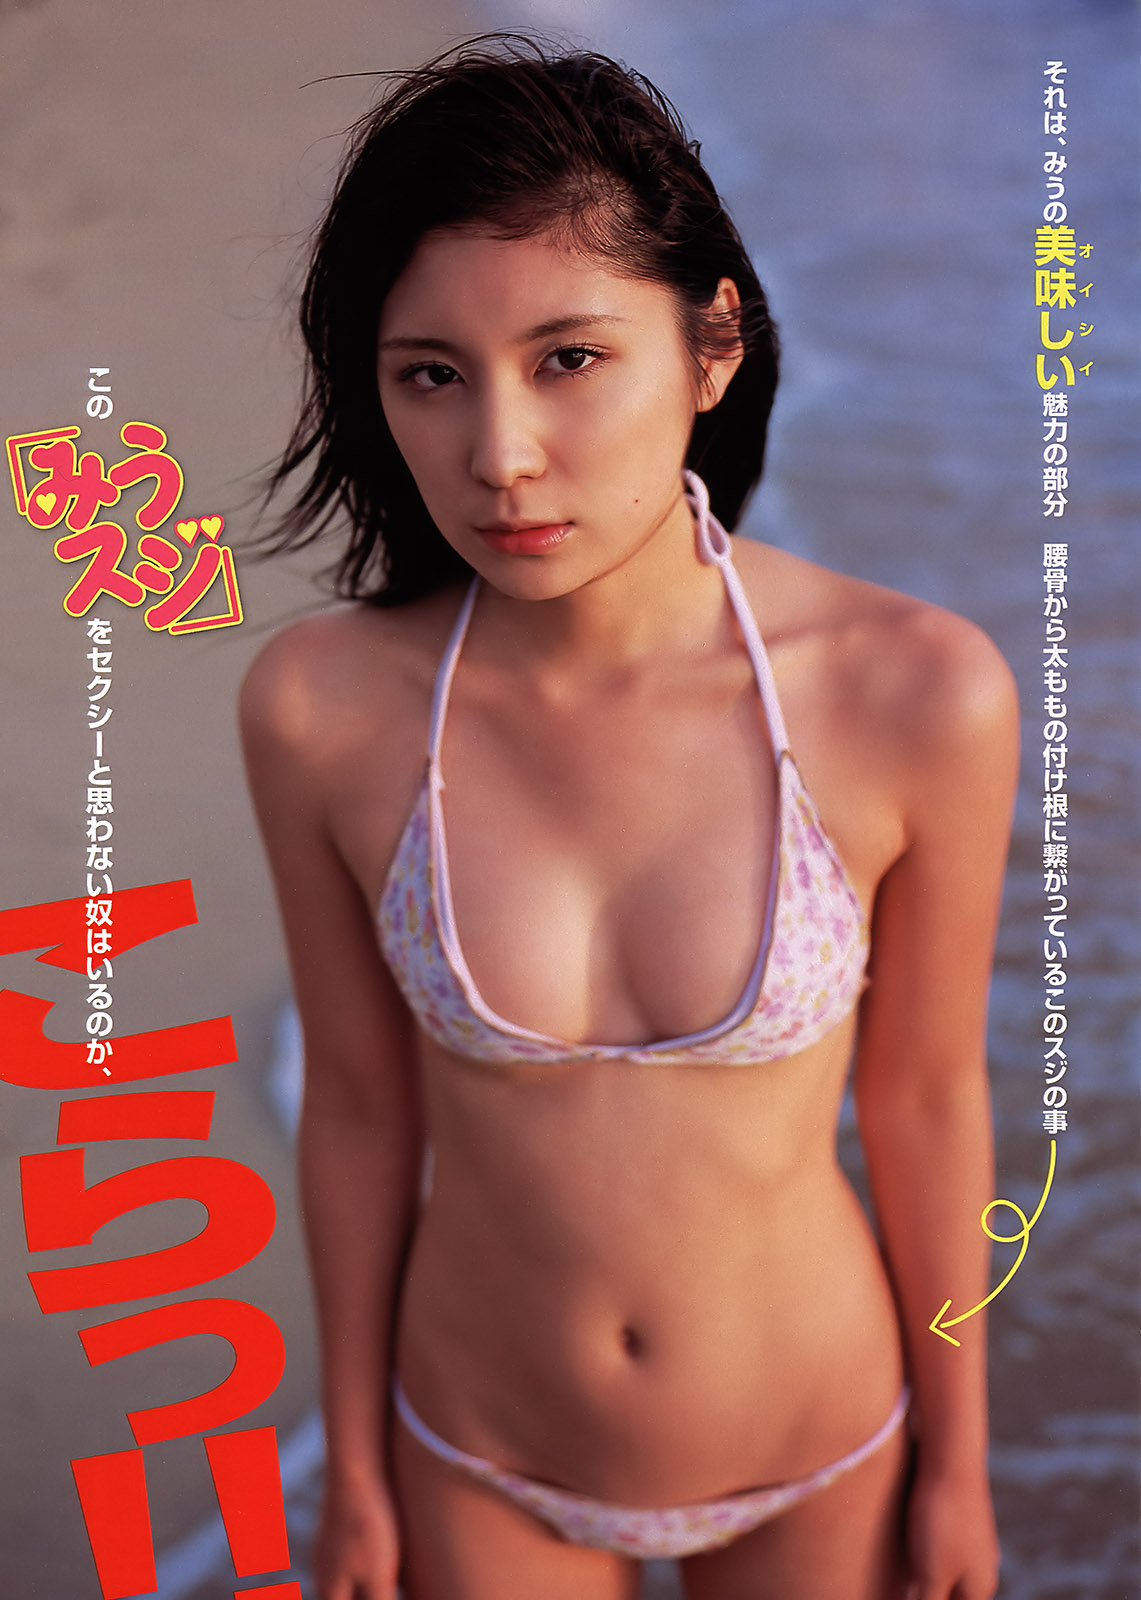 Japanese Junior Idol Miyuu http://hot-asia-gallery.blogspot.com/2011/03/miu-nakamura-japanese-idol-model-and.html